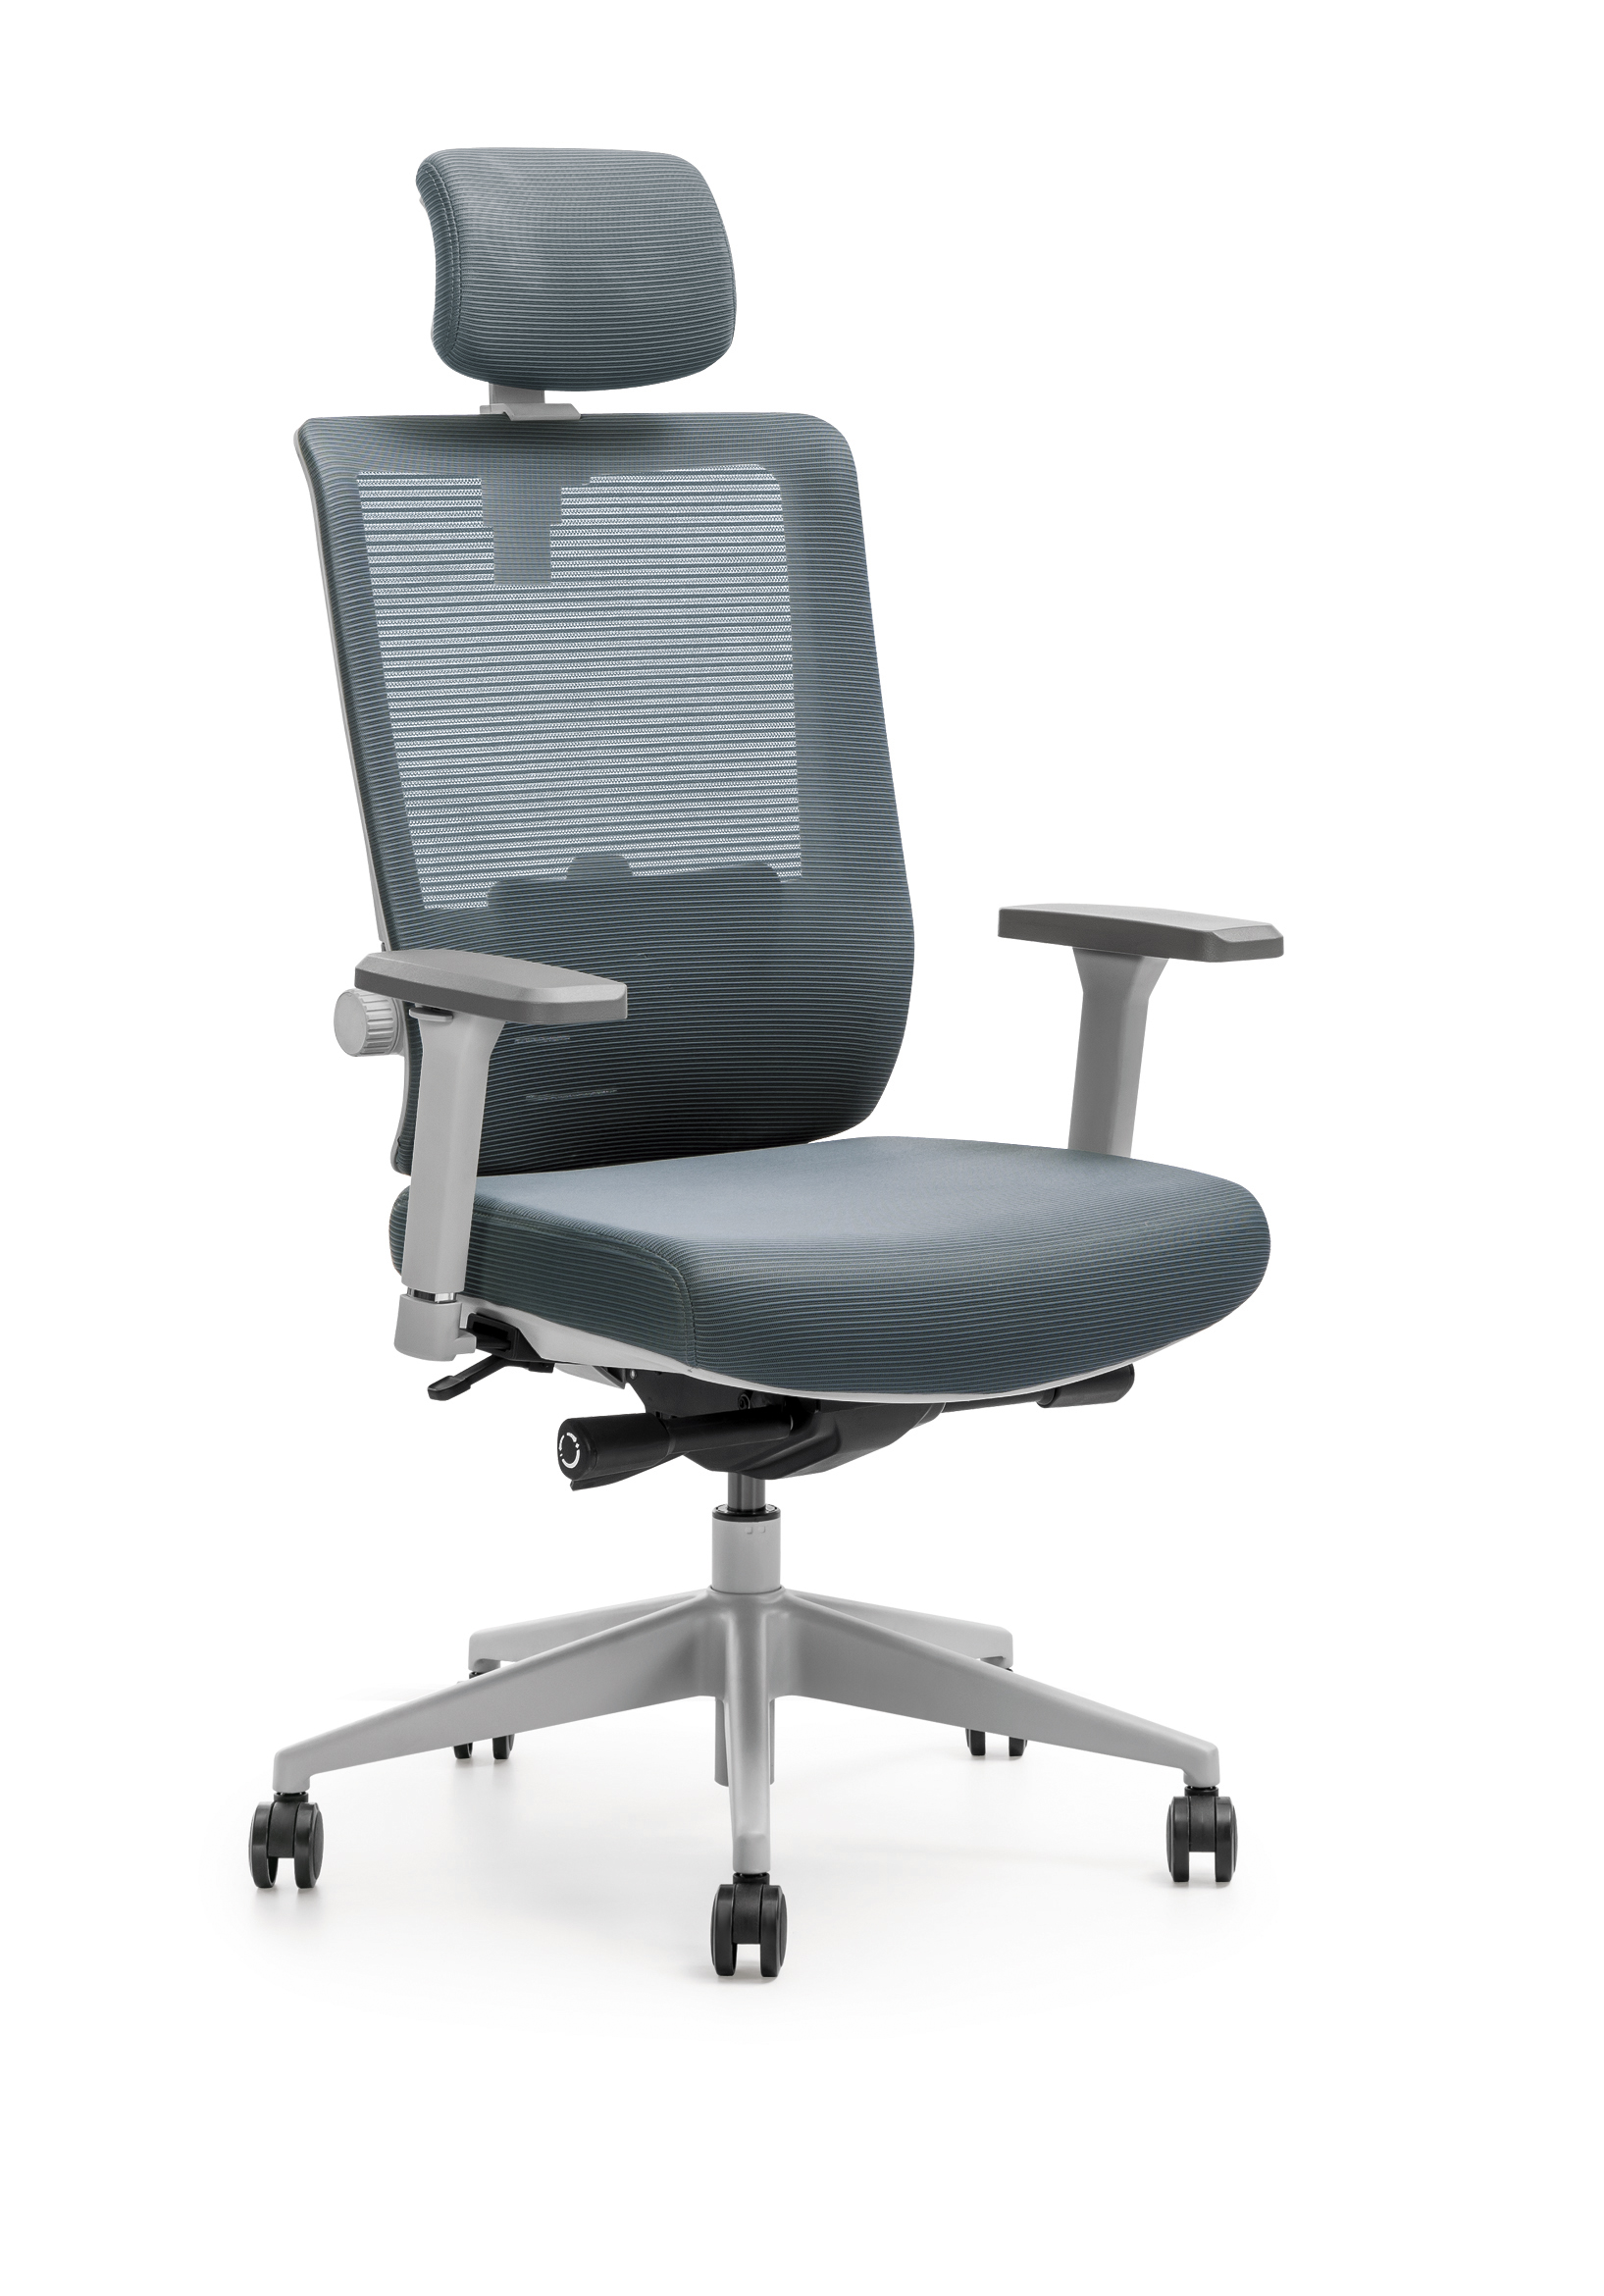 ergonomic chair comfortable light gray accent chairs adjustable meeting room office net fabric